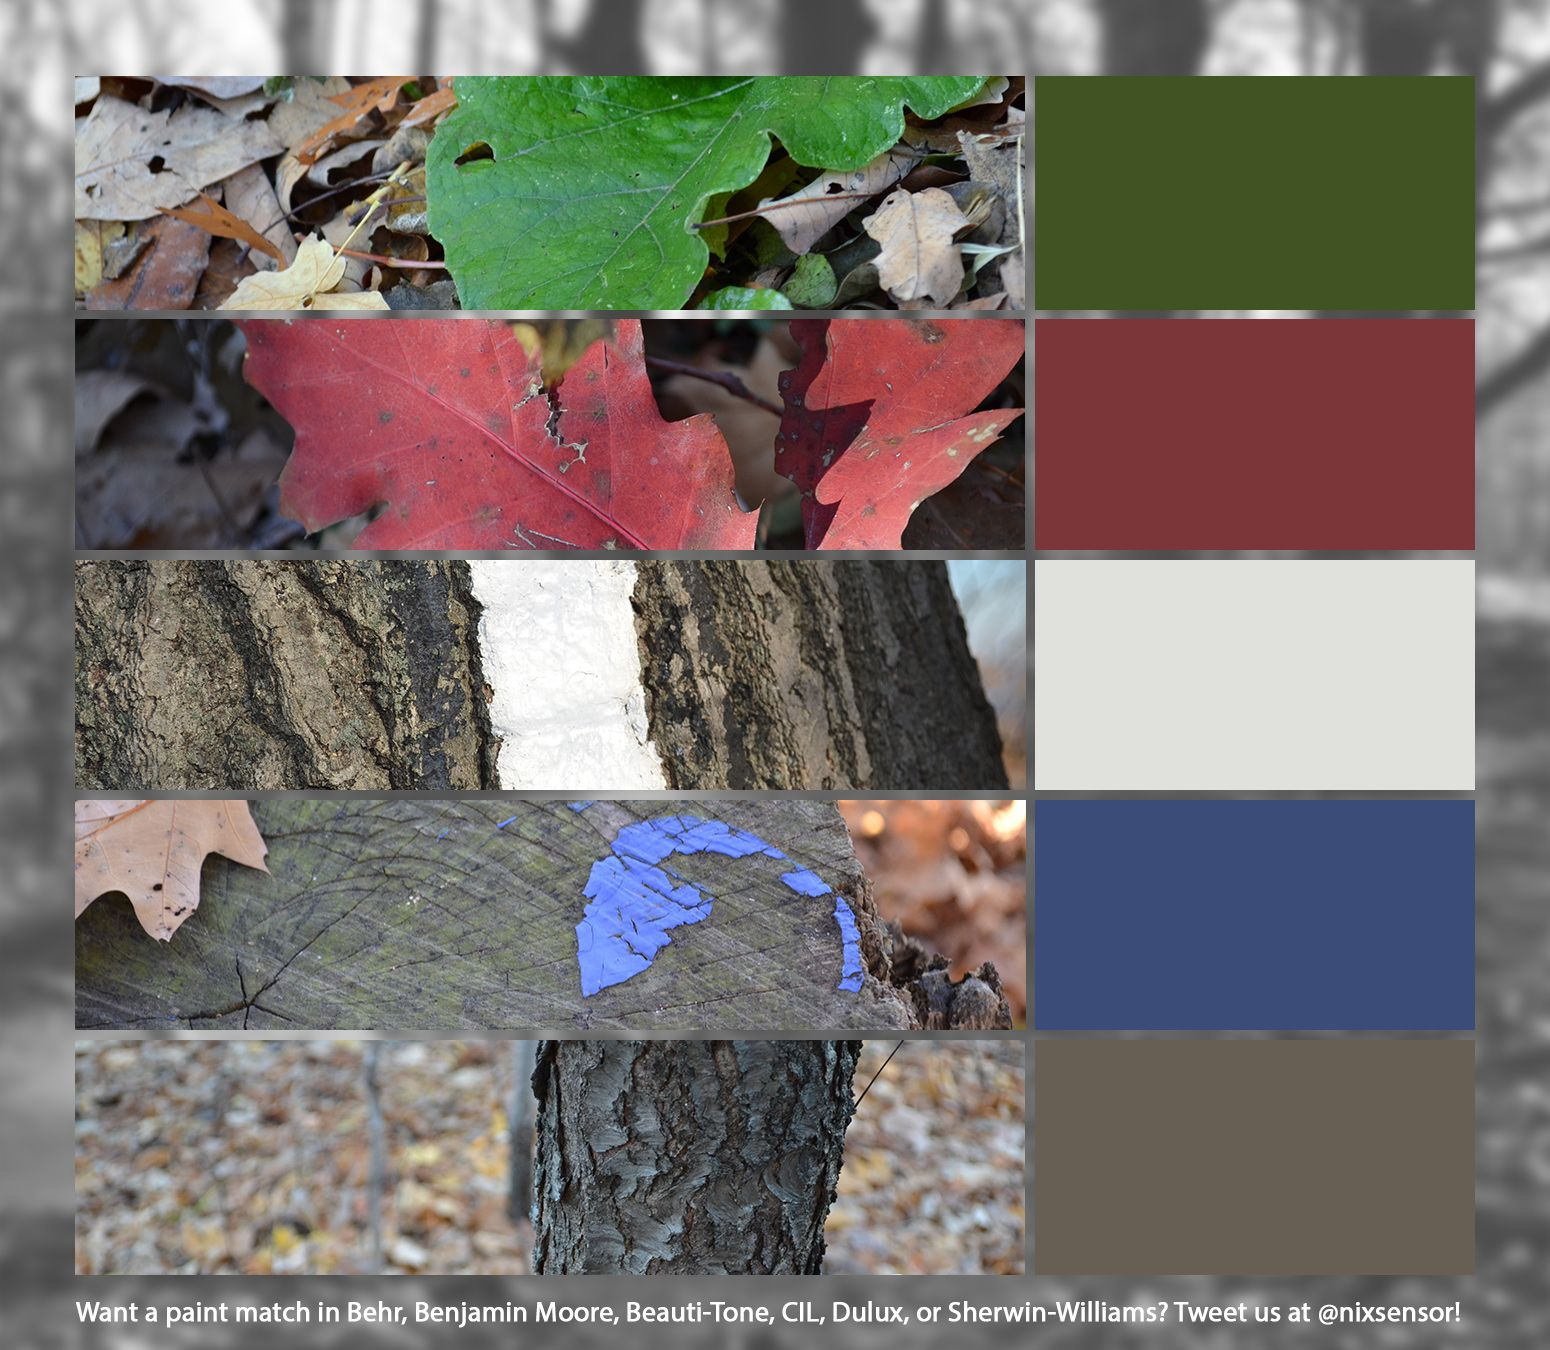 All of these colors were captured straight from nature with the Nix Pro Color Sensor. We'll provide paint matches in Beauti-Tone, Behr, Benjamin-Moore, CIL, Dulux, and Sherwin-Williams on request! #fall #palette #color